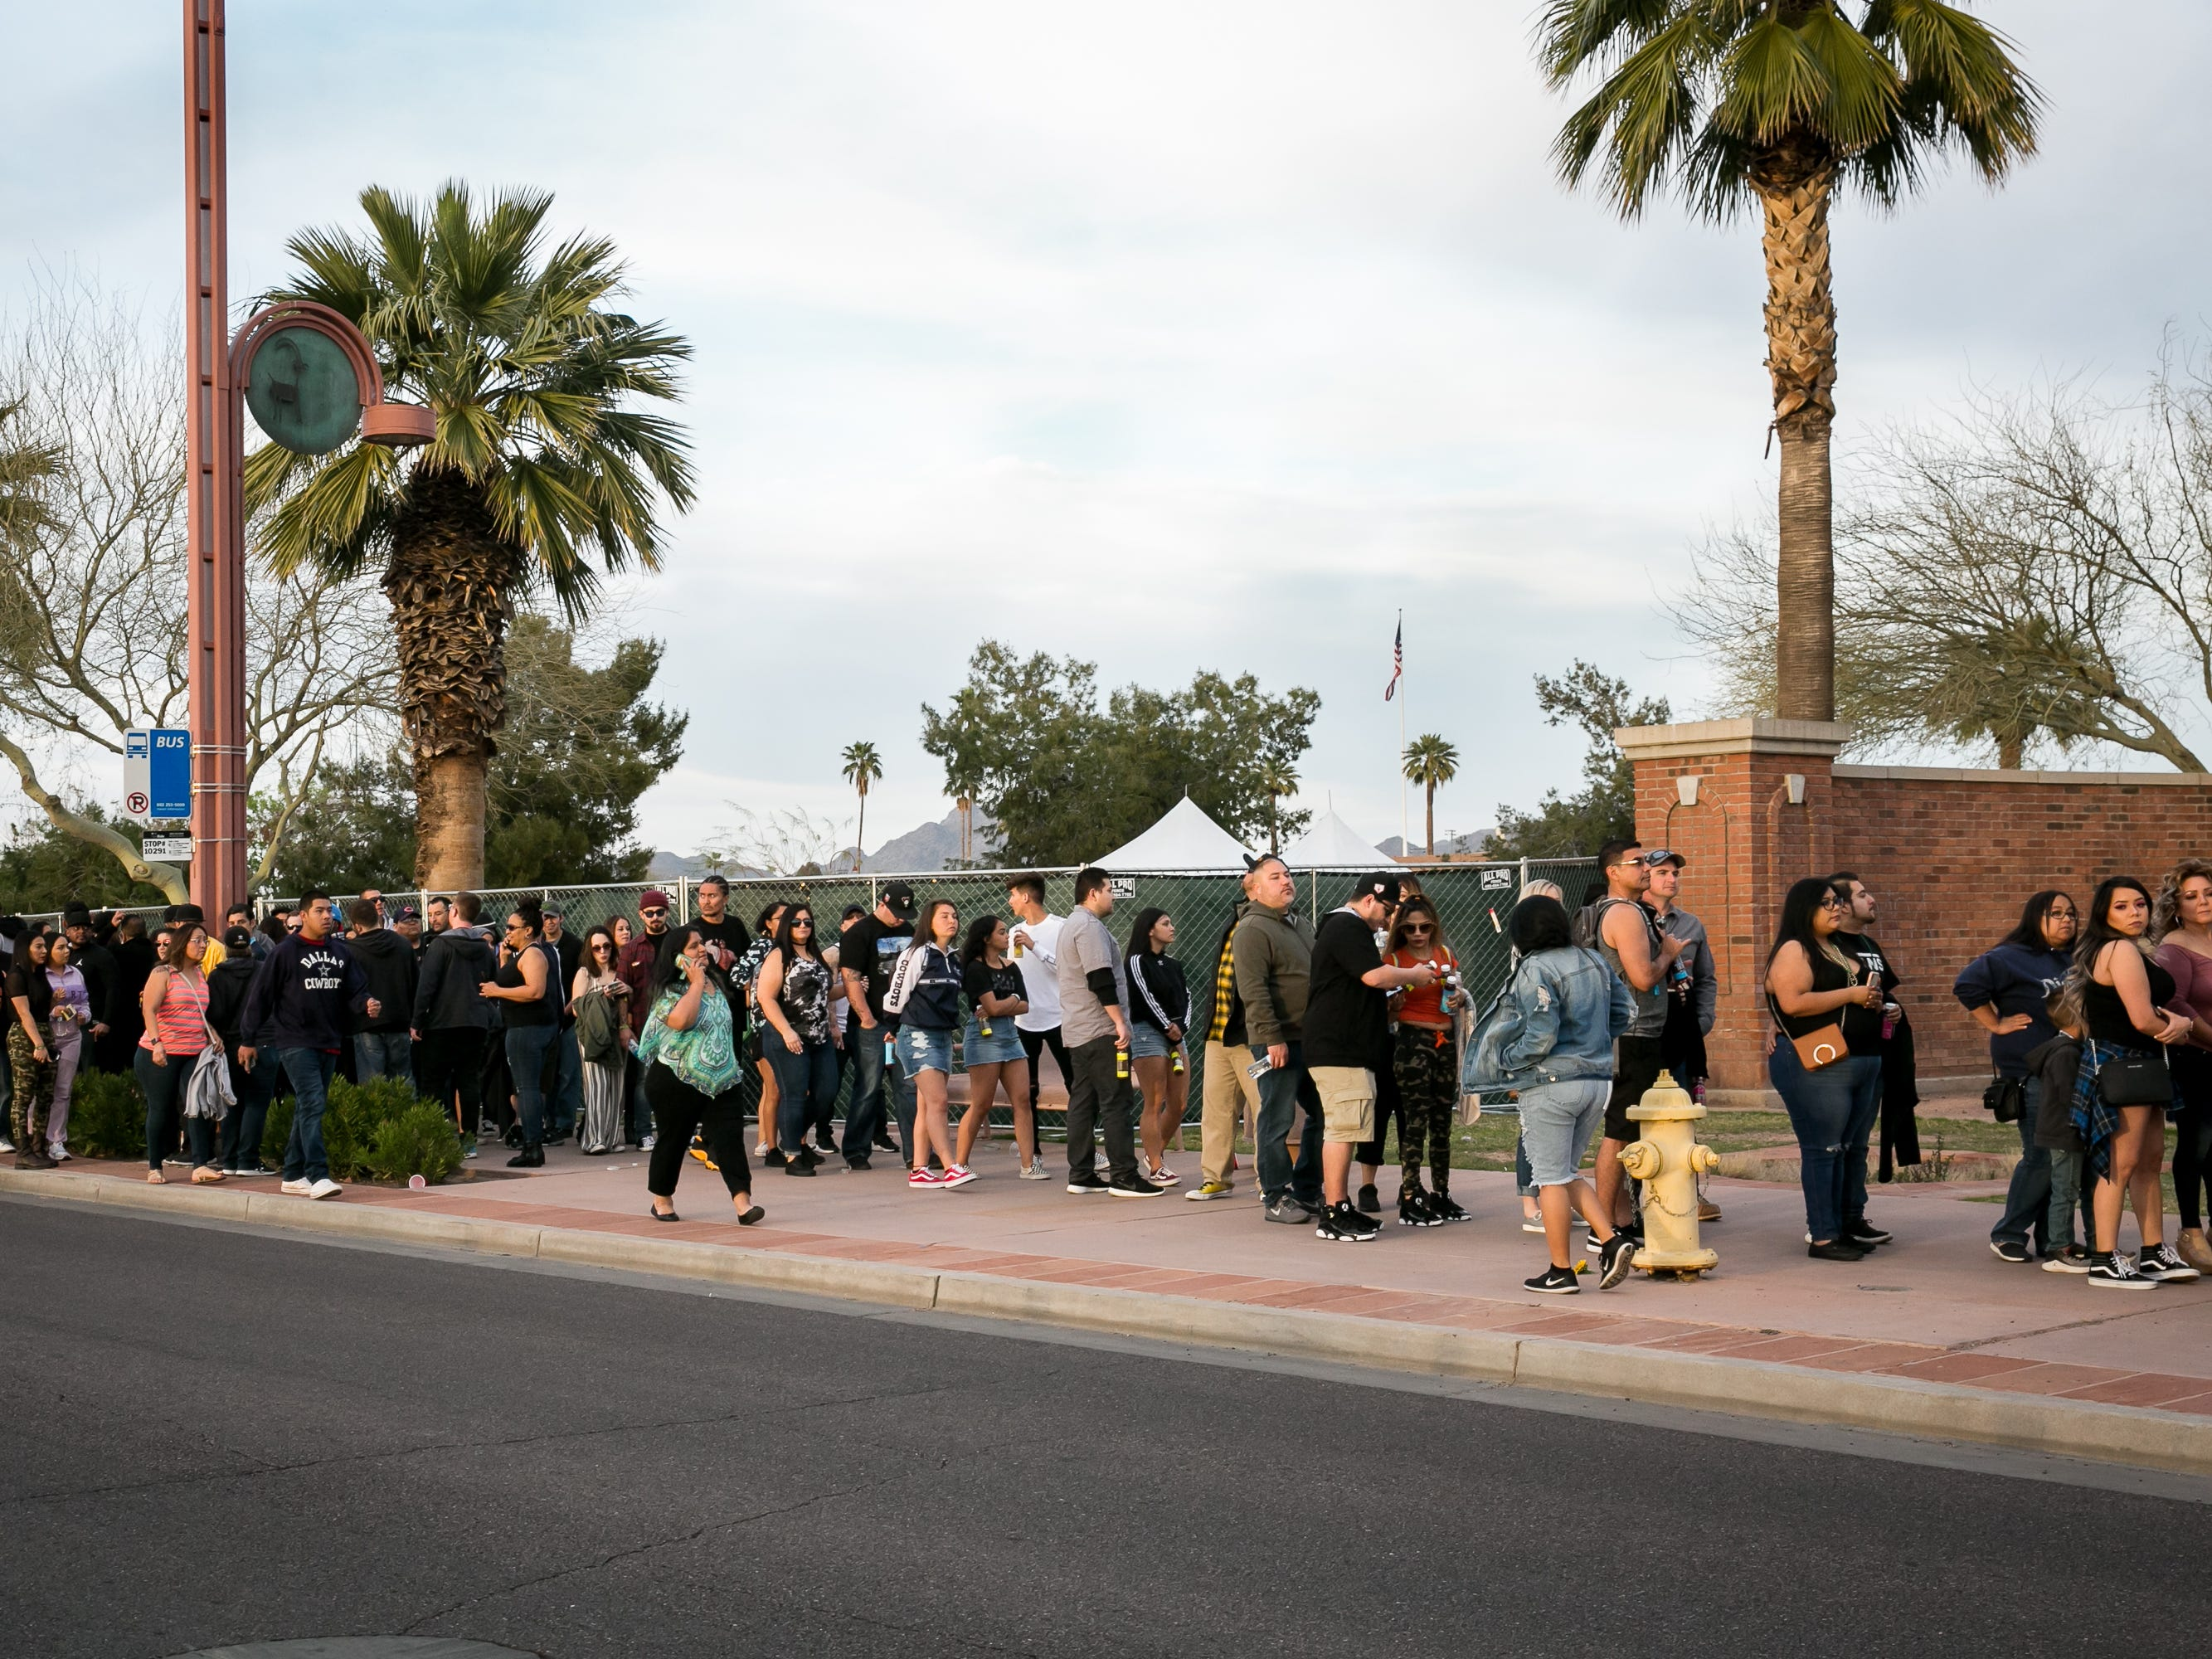 The will call line wait time was in excess of one hour at Pot of Gold Music Festival at Steele Indian School Park on Friday, March 15, 2019.